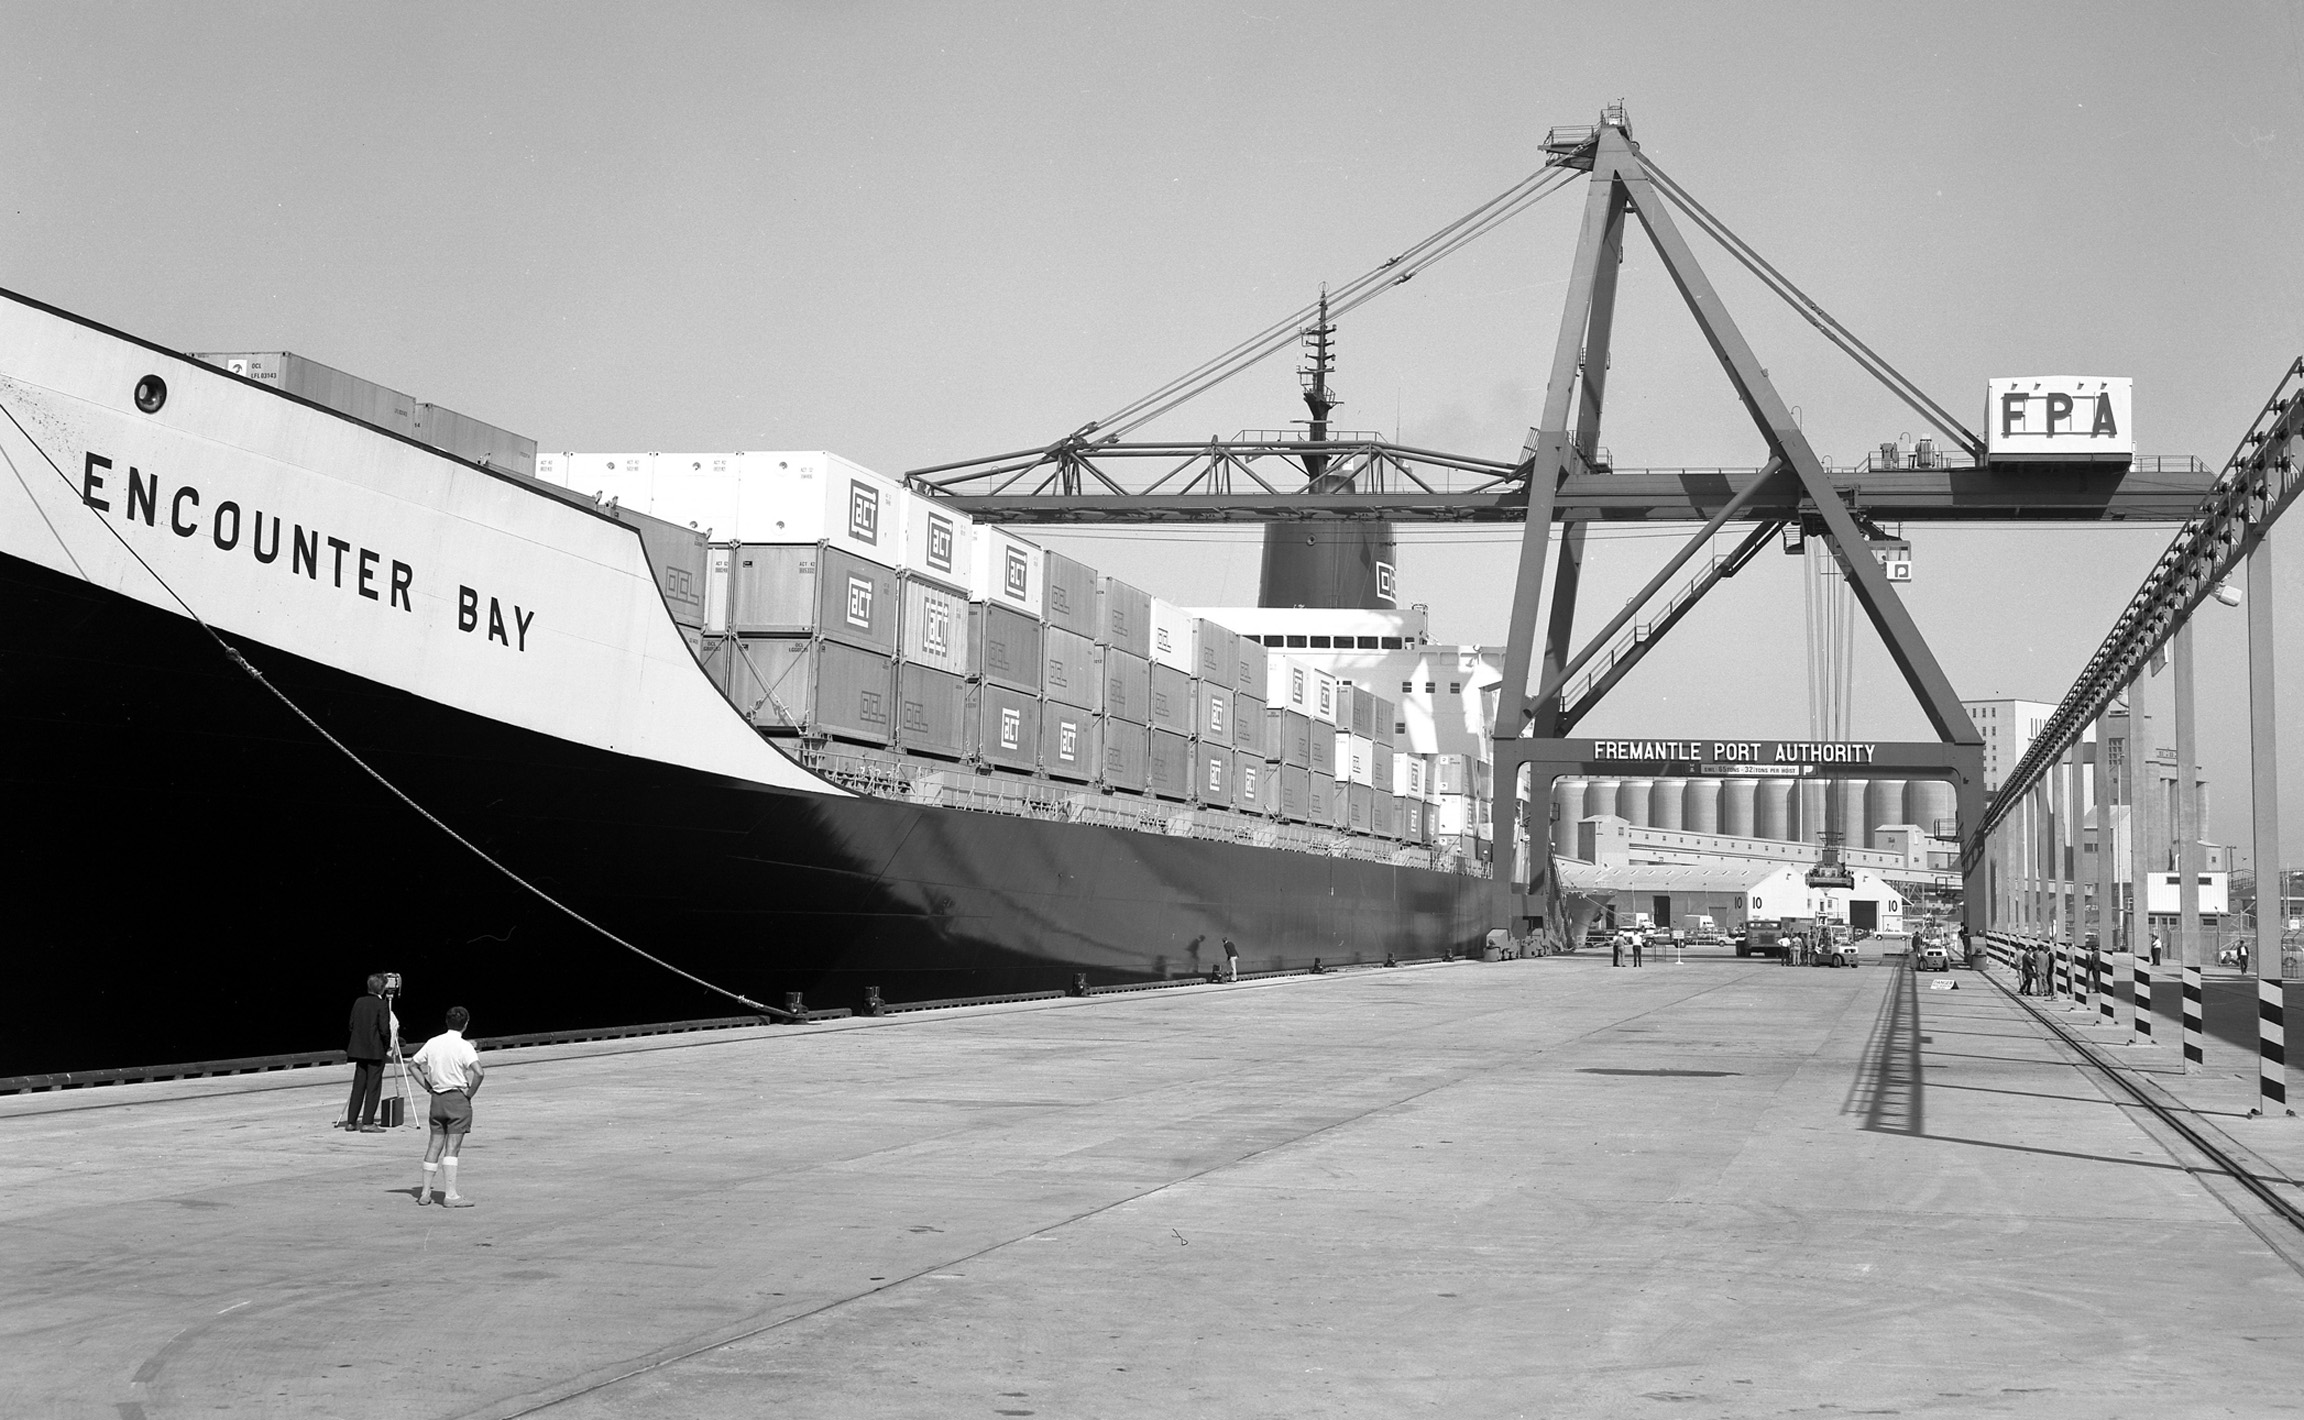 1969 March - Encounter Bay at 12 Berth Container Terminal North Quay